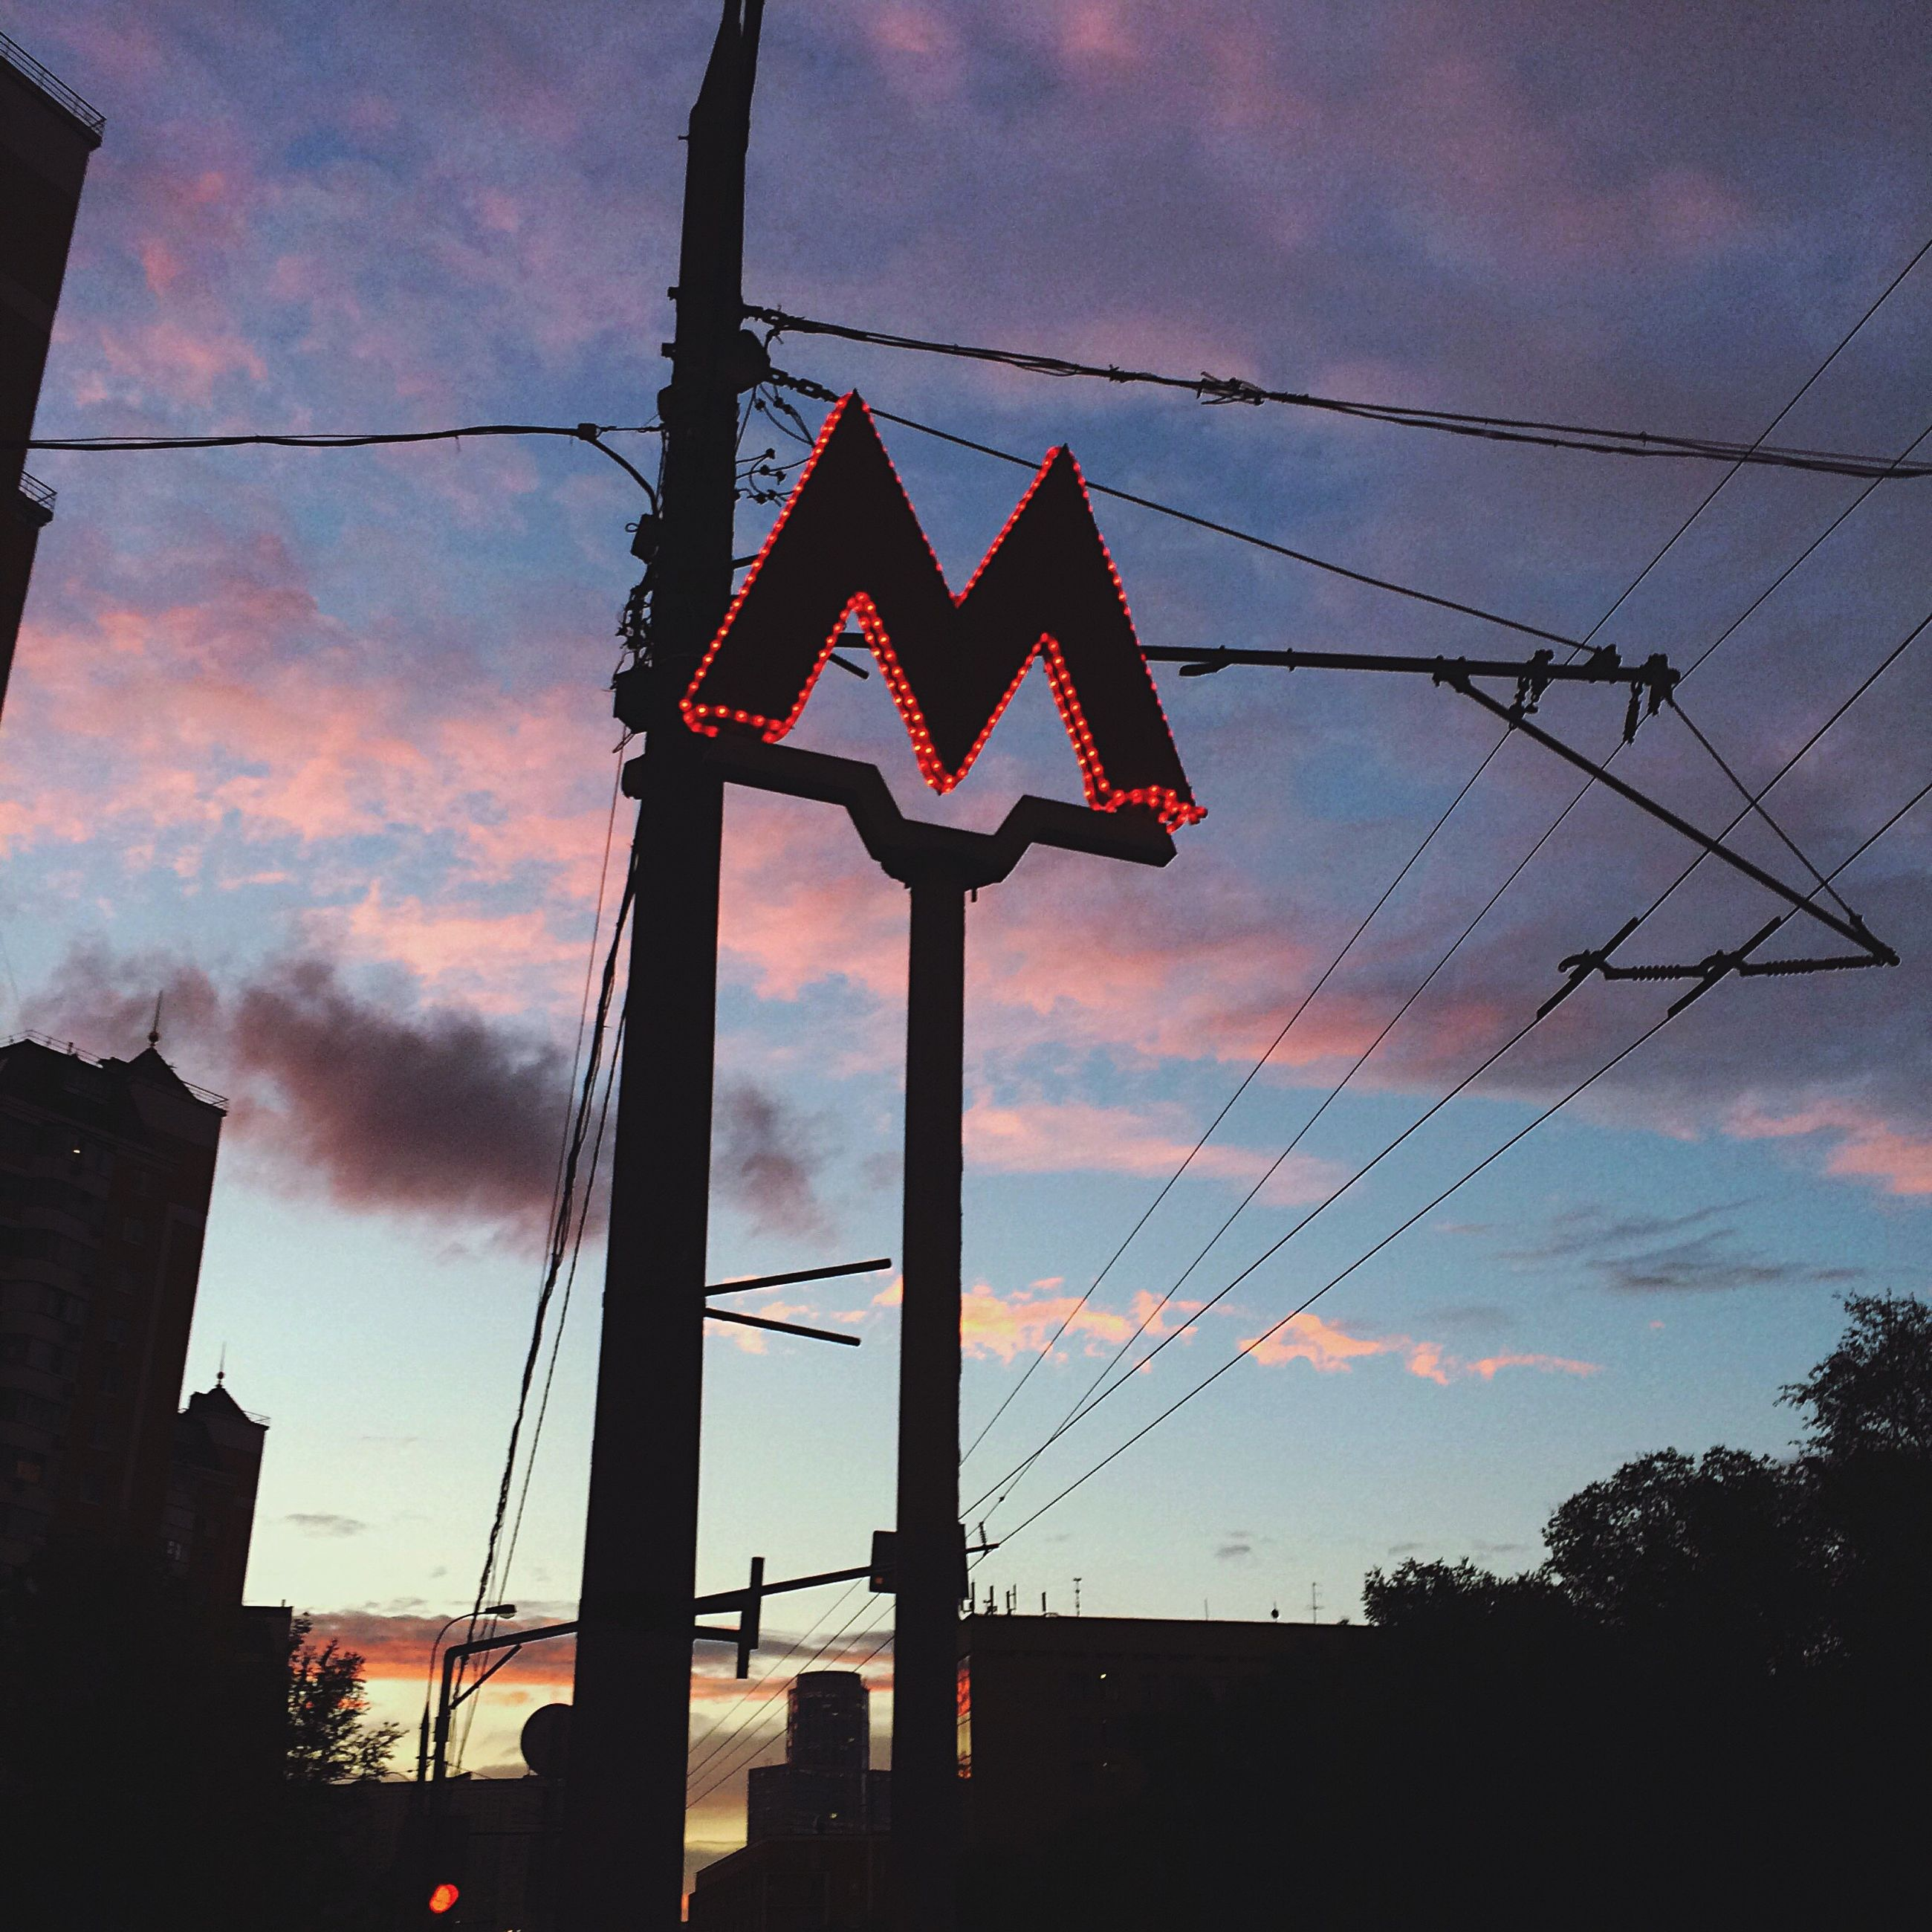 sunset, silhouette, low angle view, sky, cloud - sky, dusk, cloud, development, cable, outdoors, cloudy, power line, blue, outline, red, high section, no people, large, multi colored